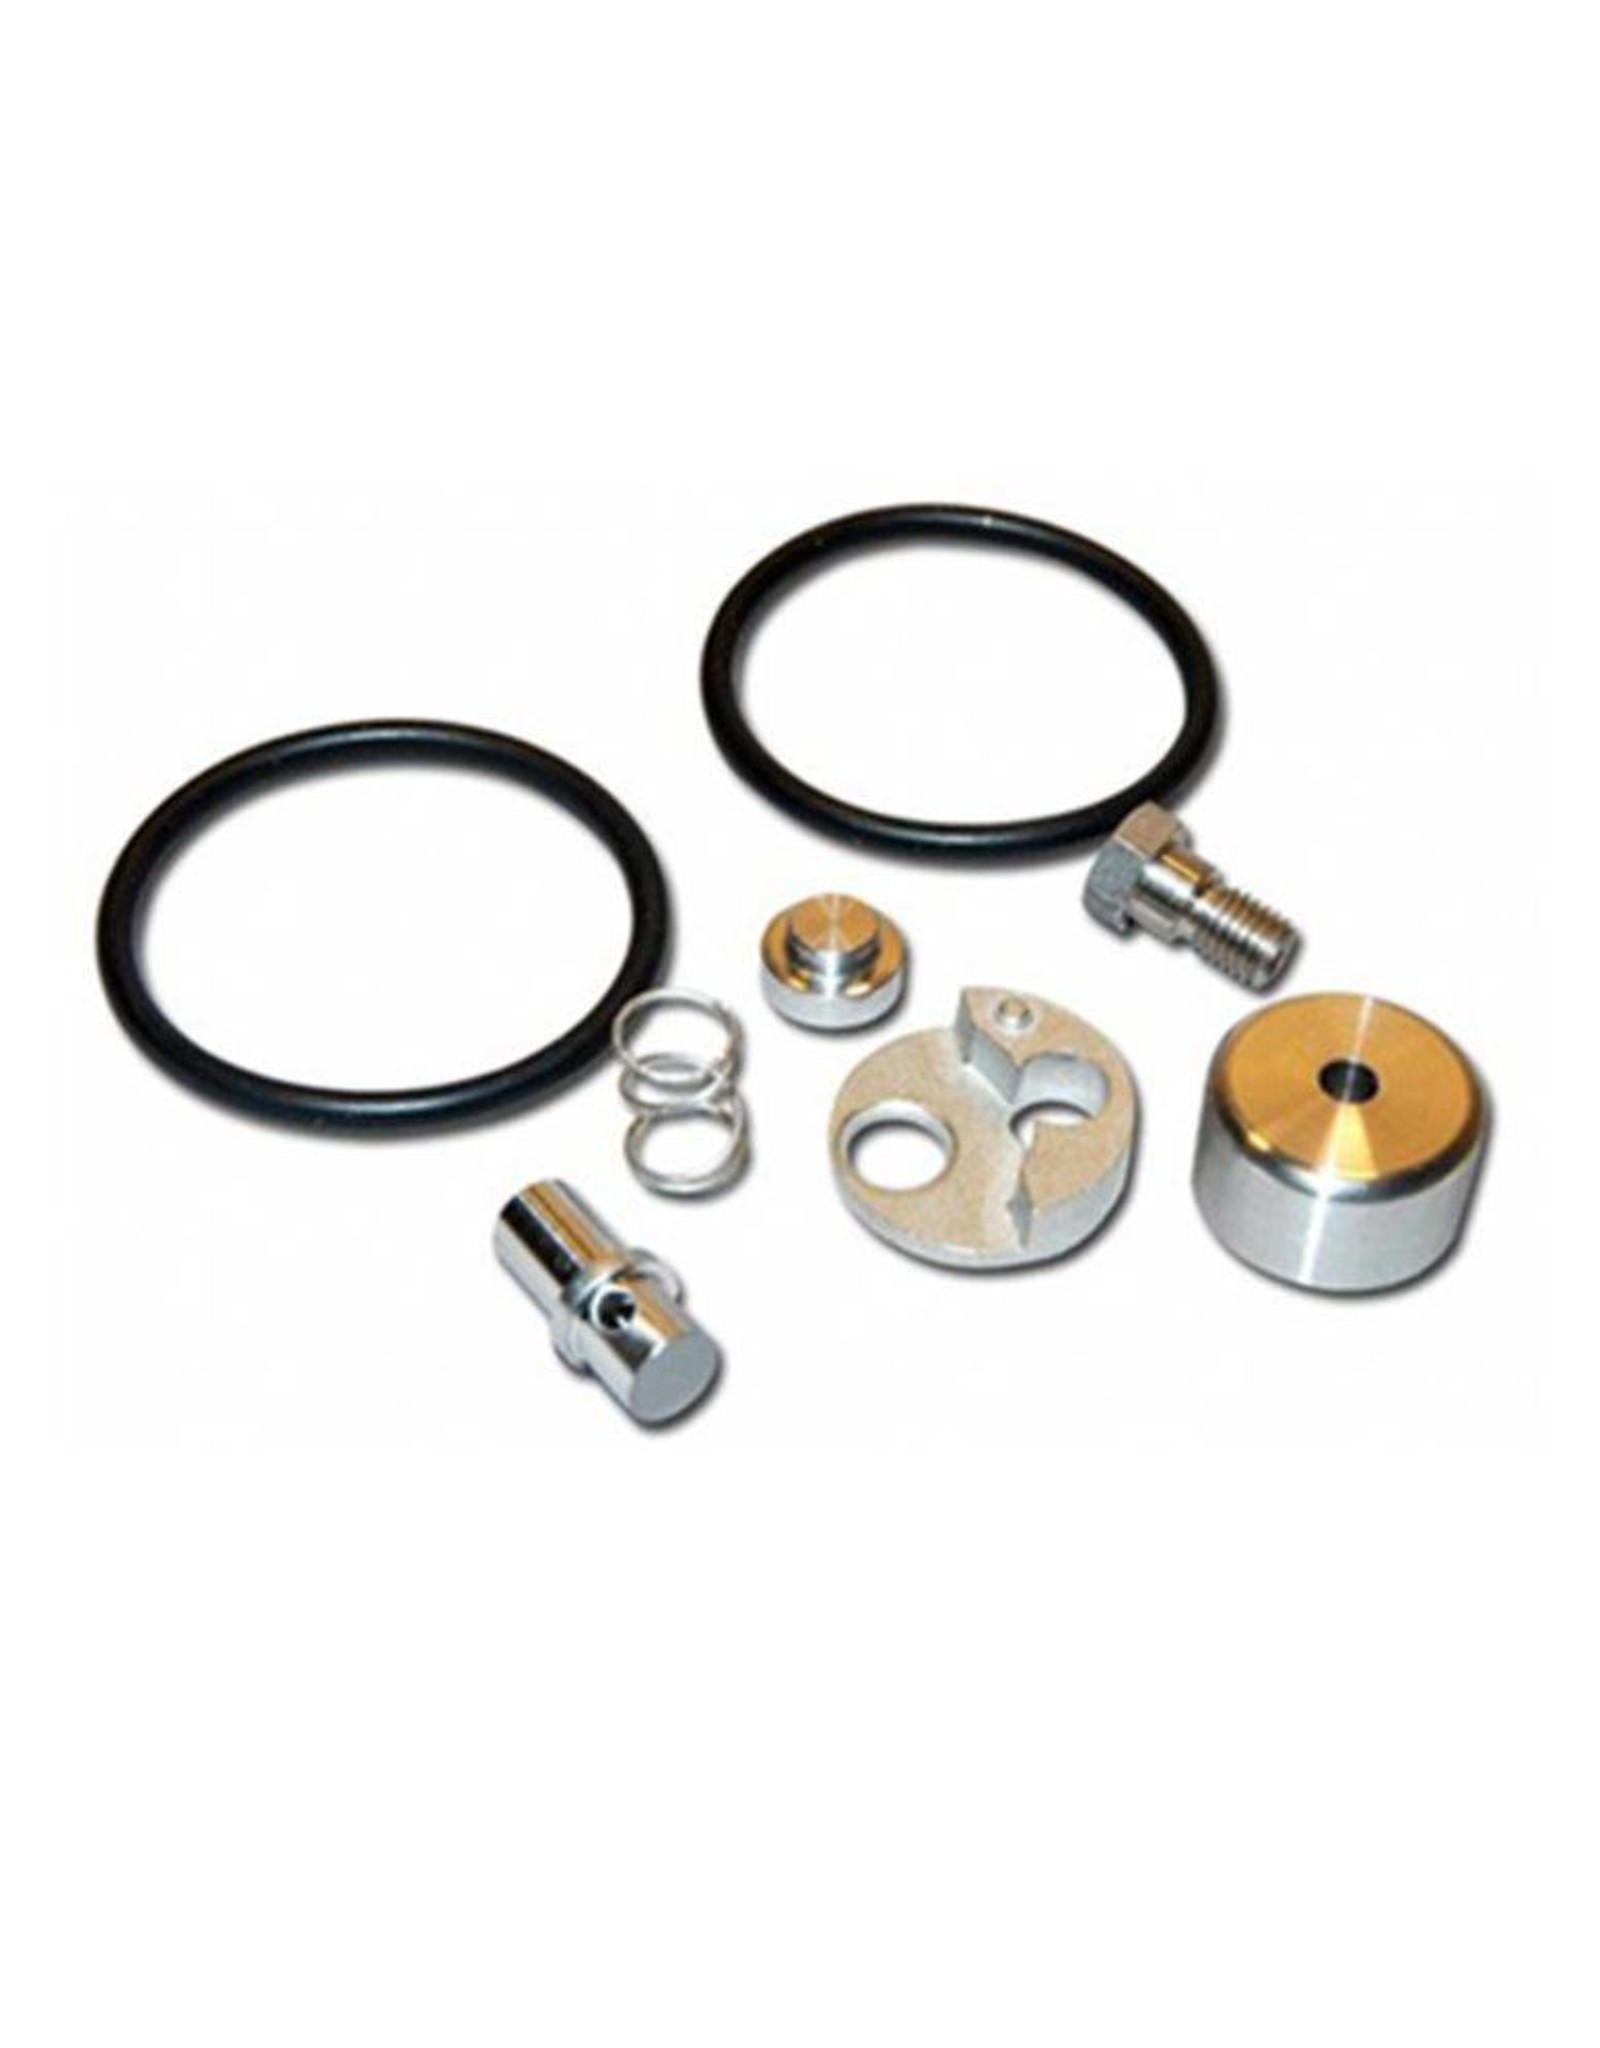 Flow Style Check Valve Repair kit